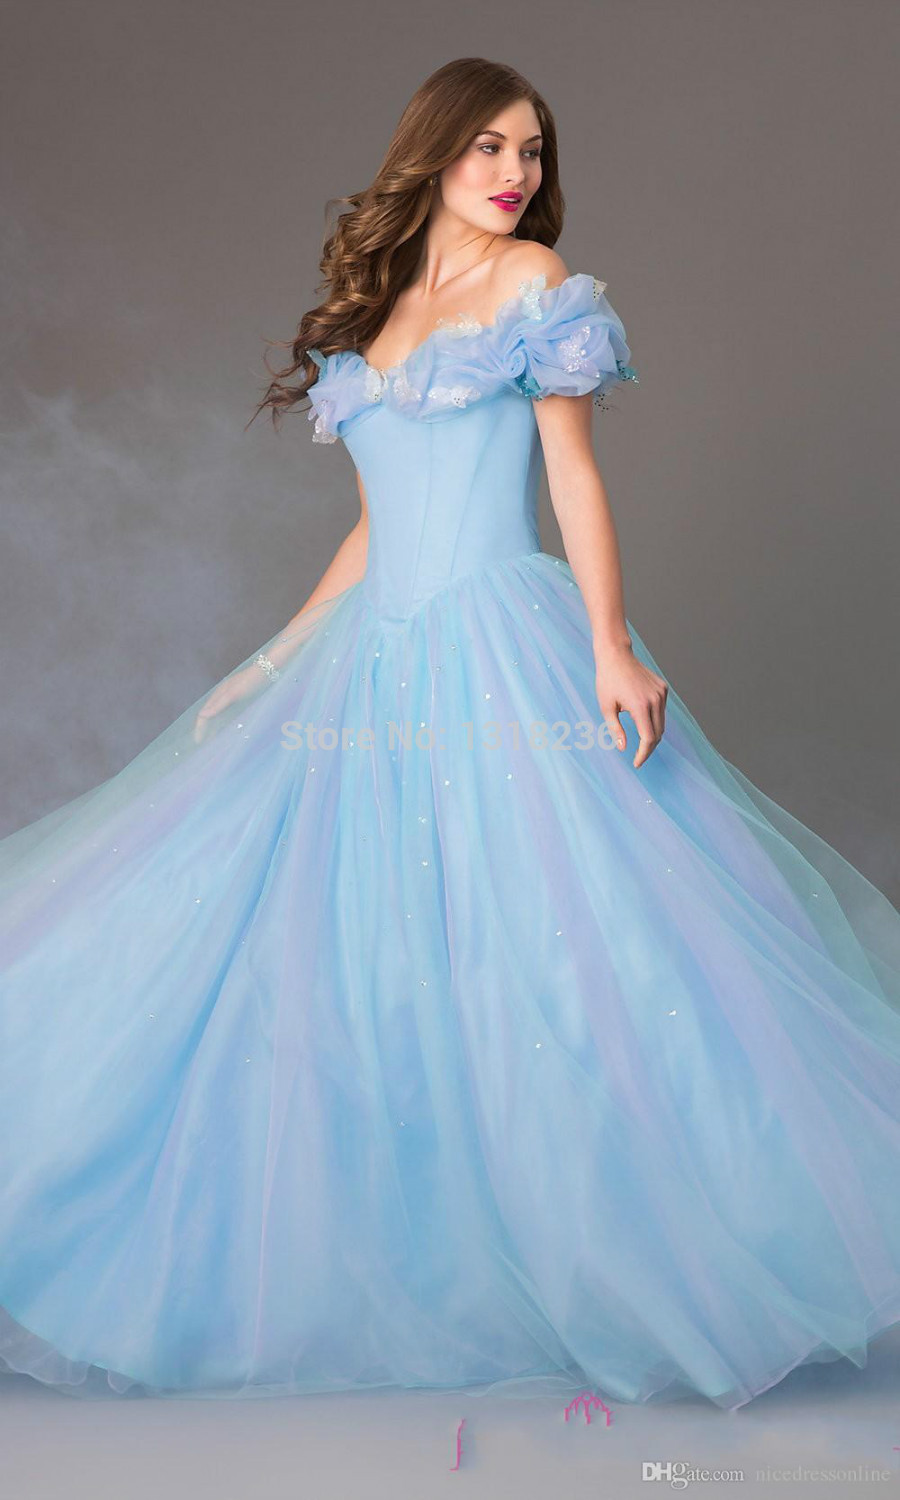 Latest Fairy Tale Cinderella Bridal Ball Gowns | women wedding gowns